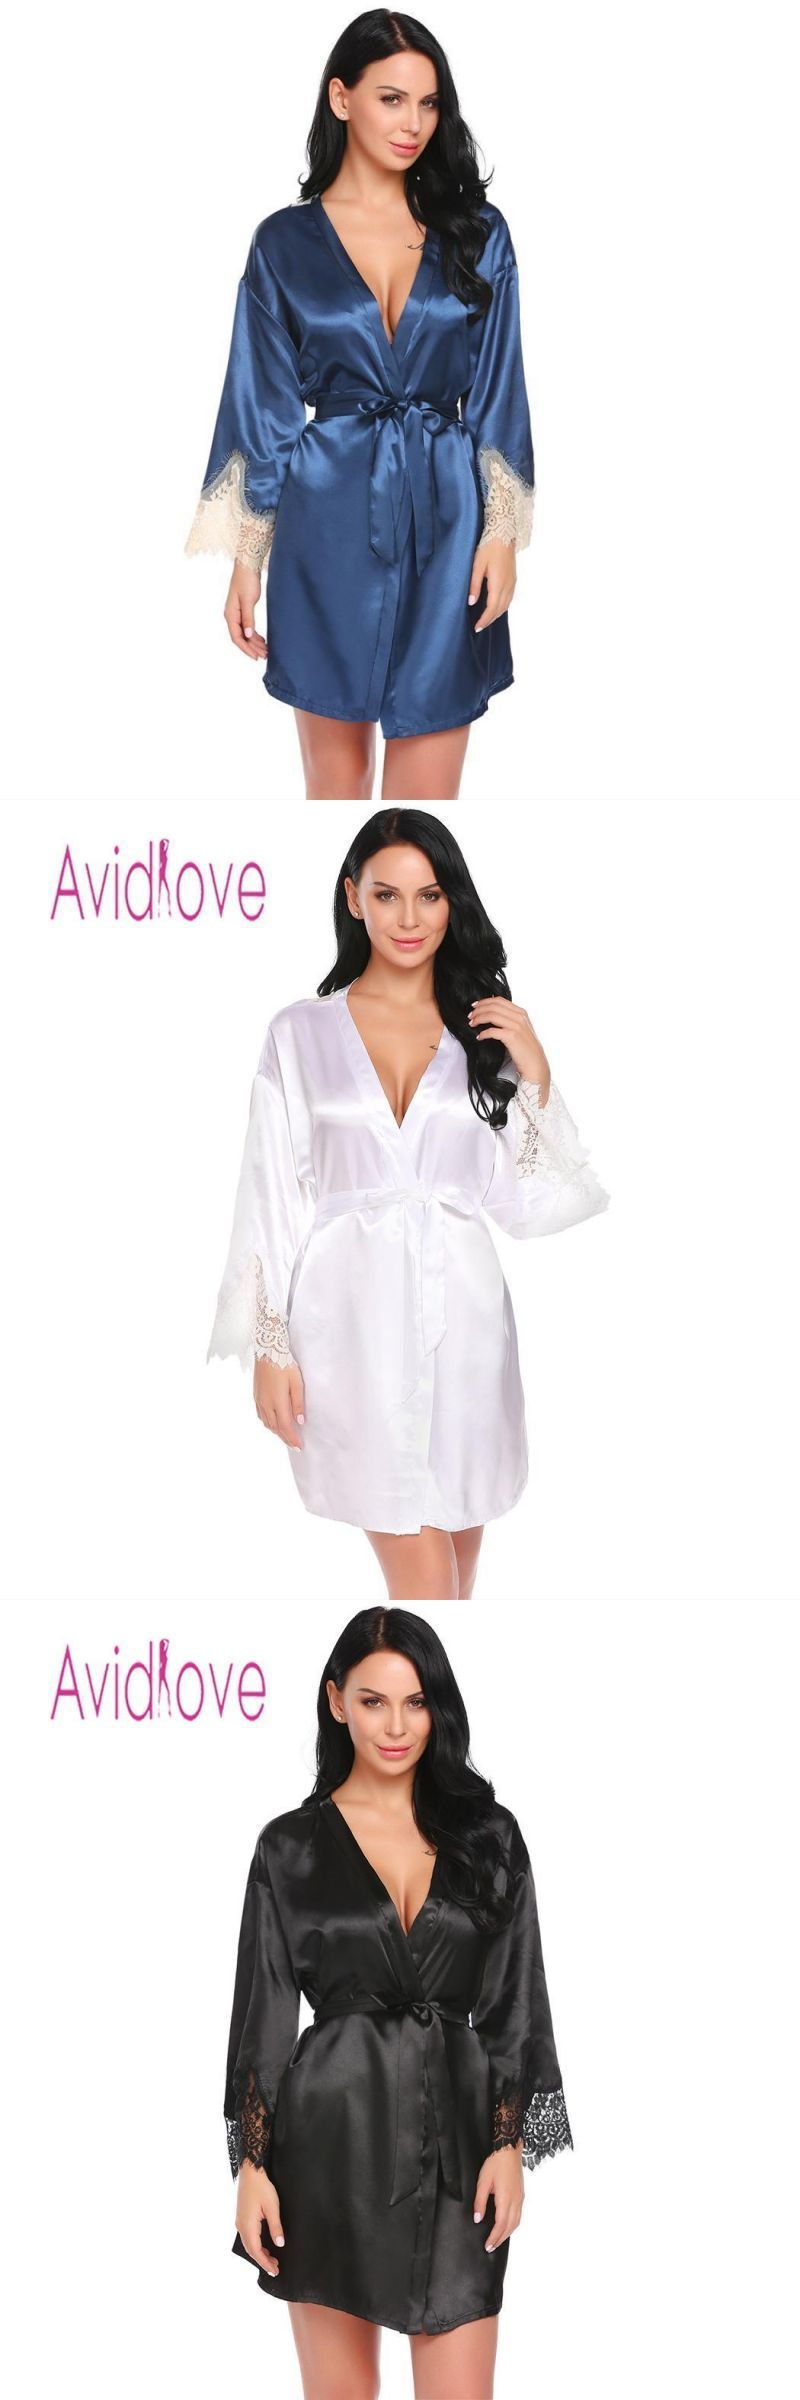 Women sleepwear night dress sleeve casual vneck long lace satin